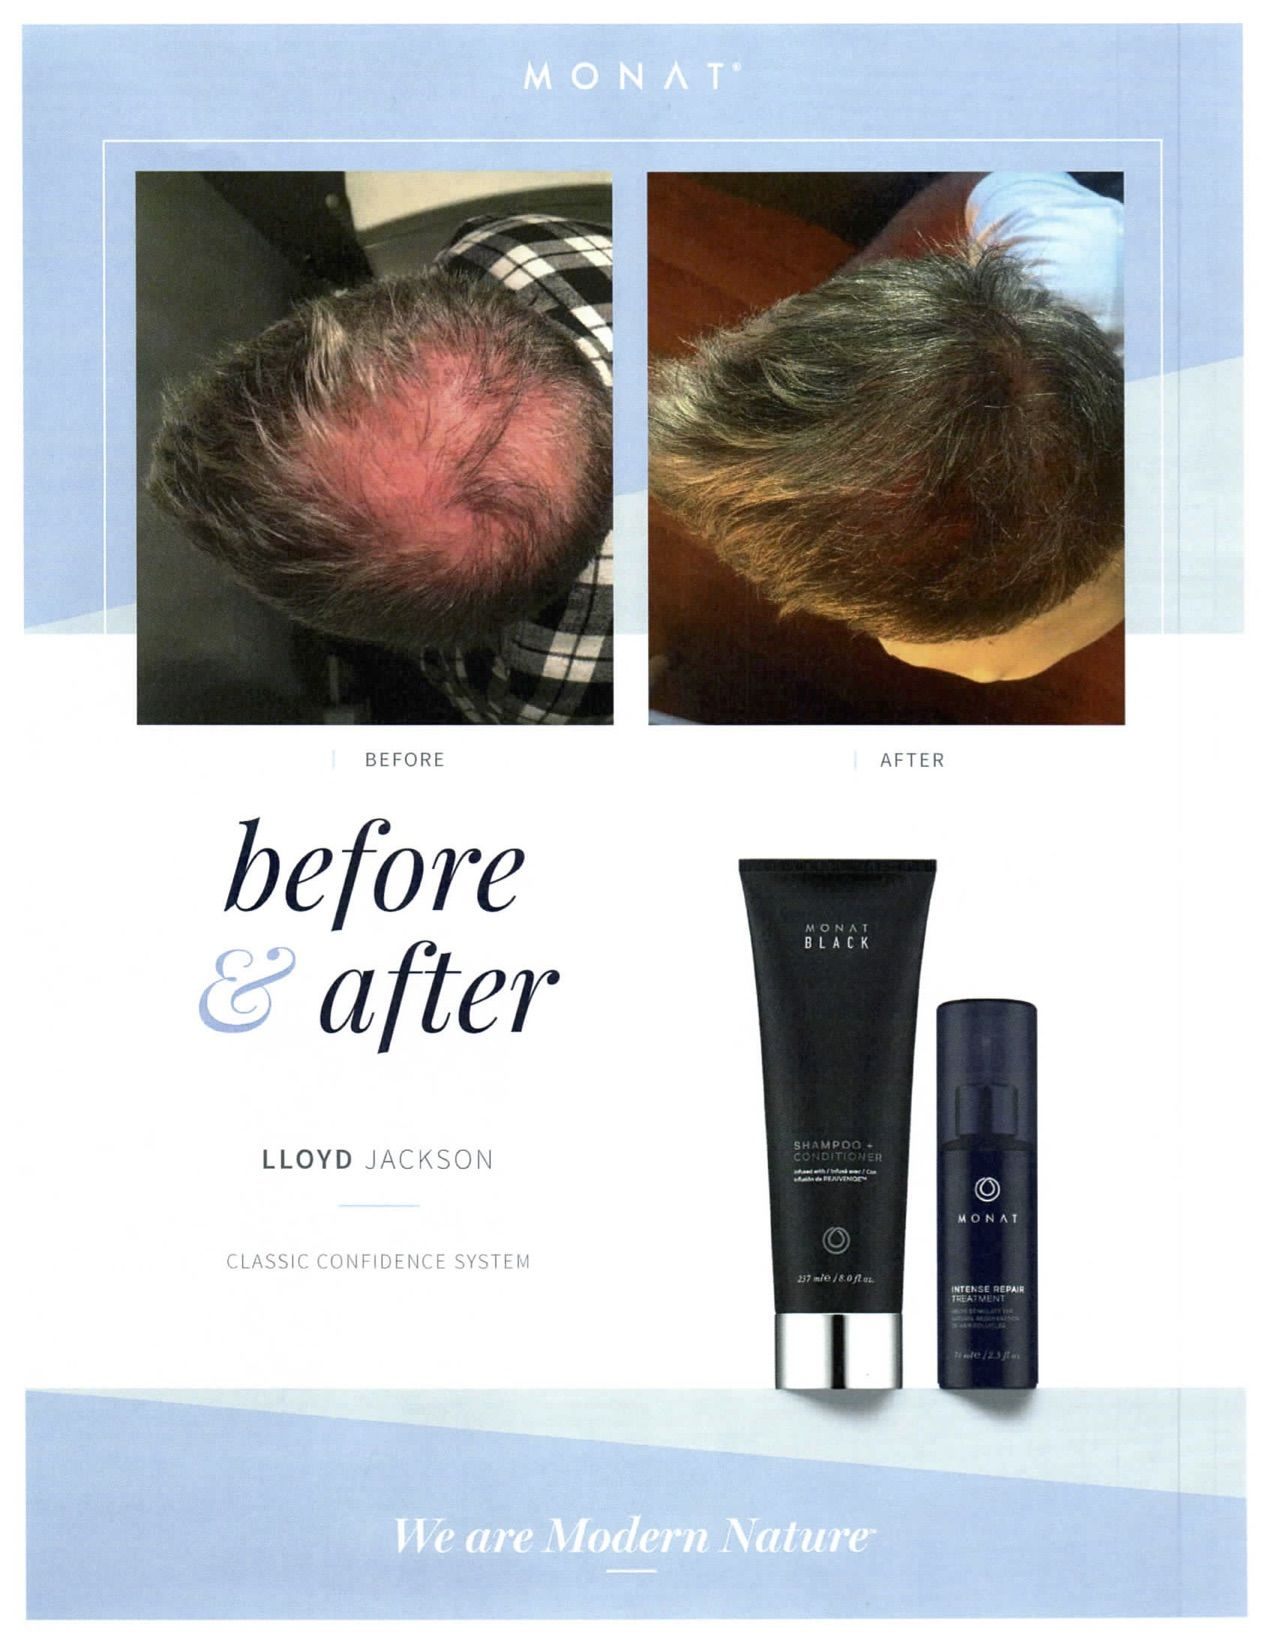 No One Likes Thinning Hair Monat Black 2 In 1 System Helps Nurture